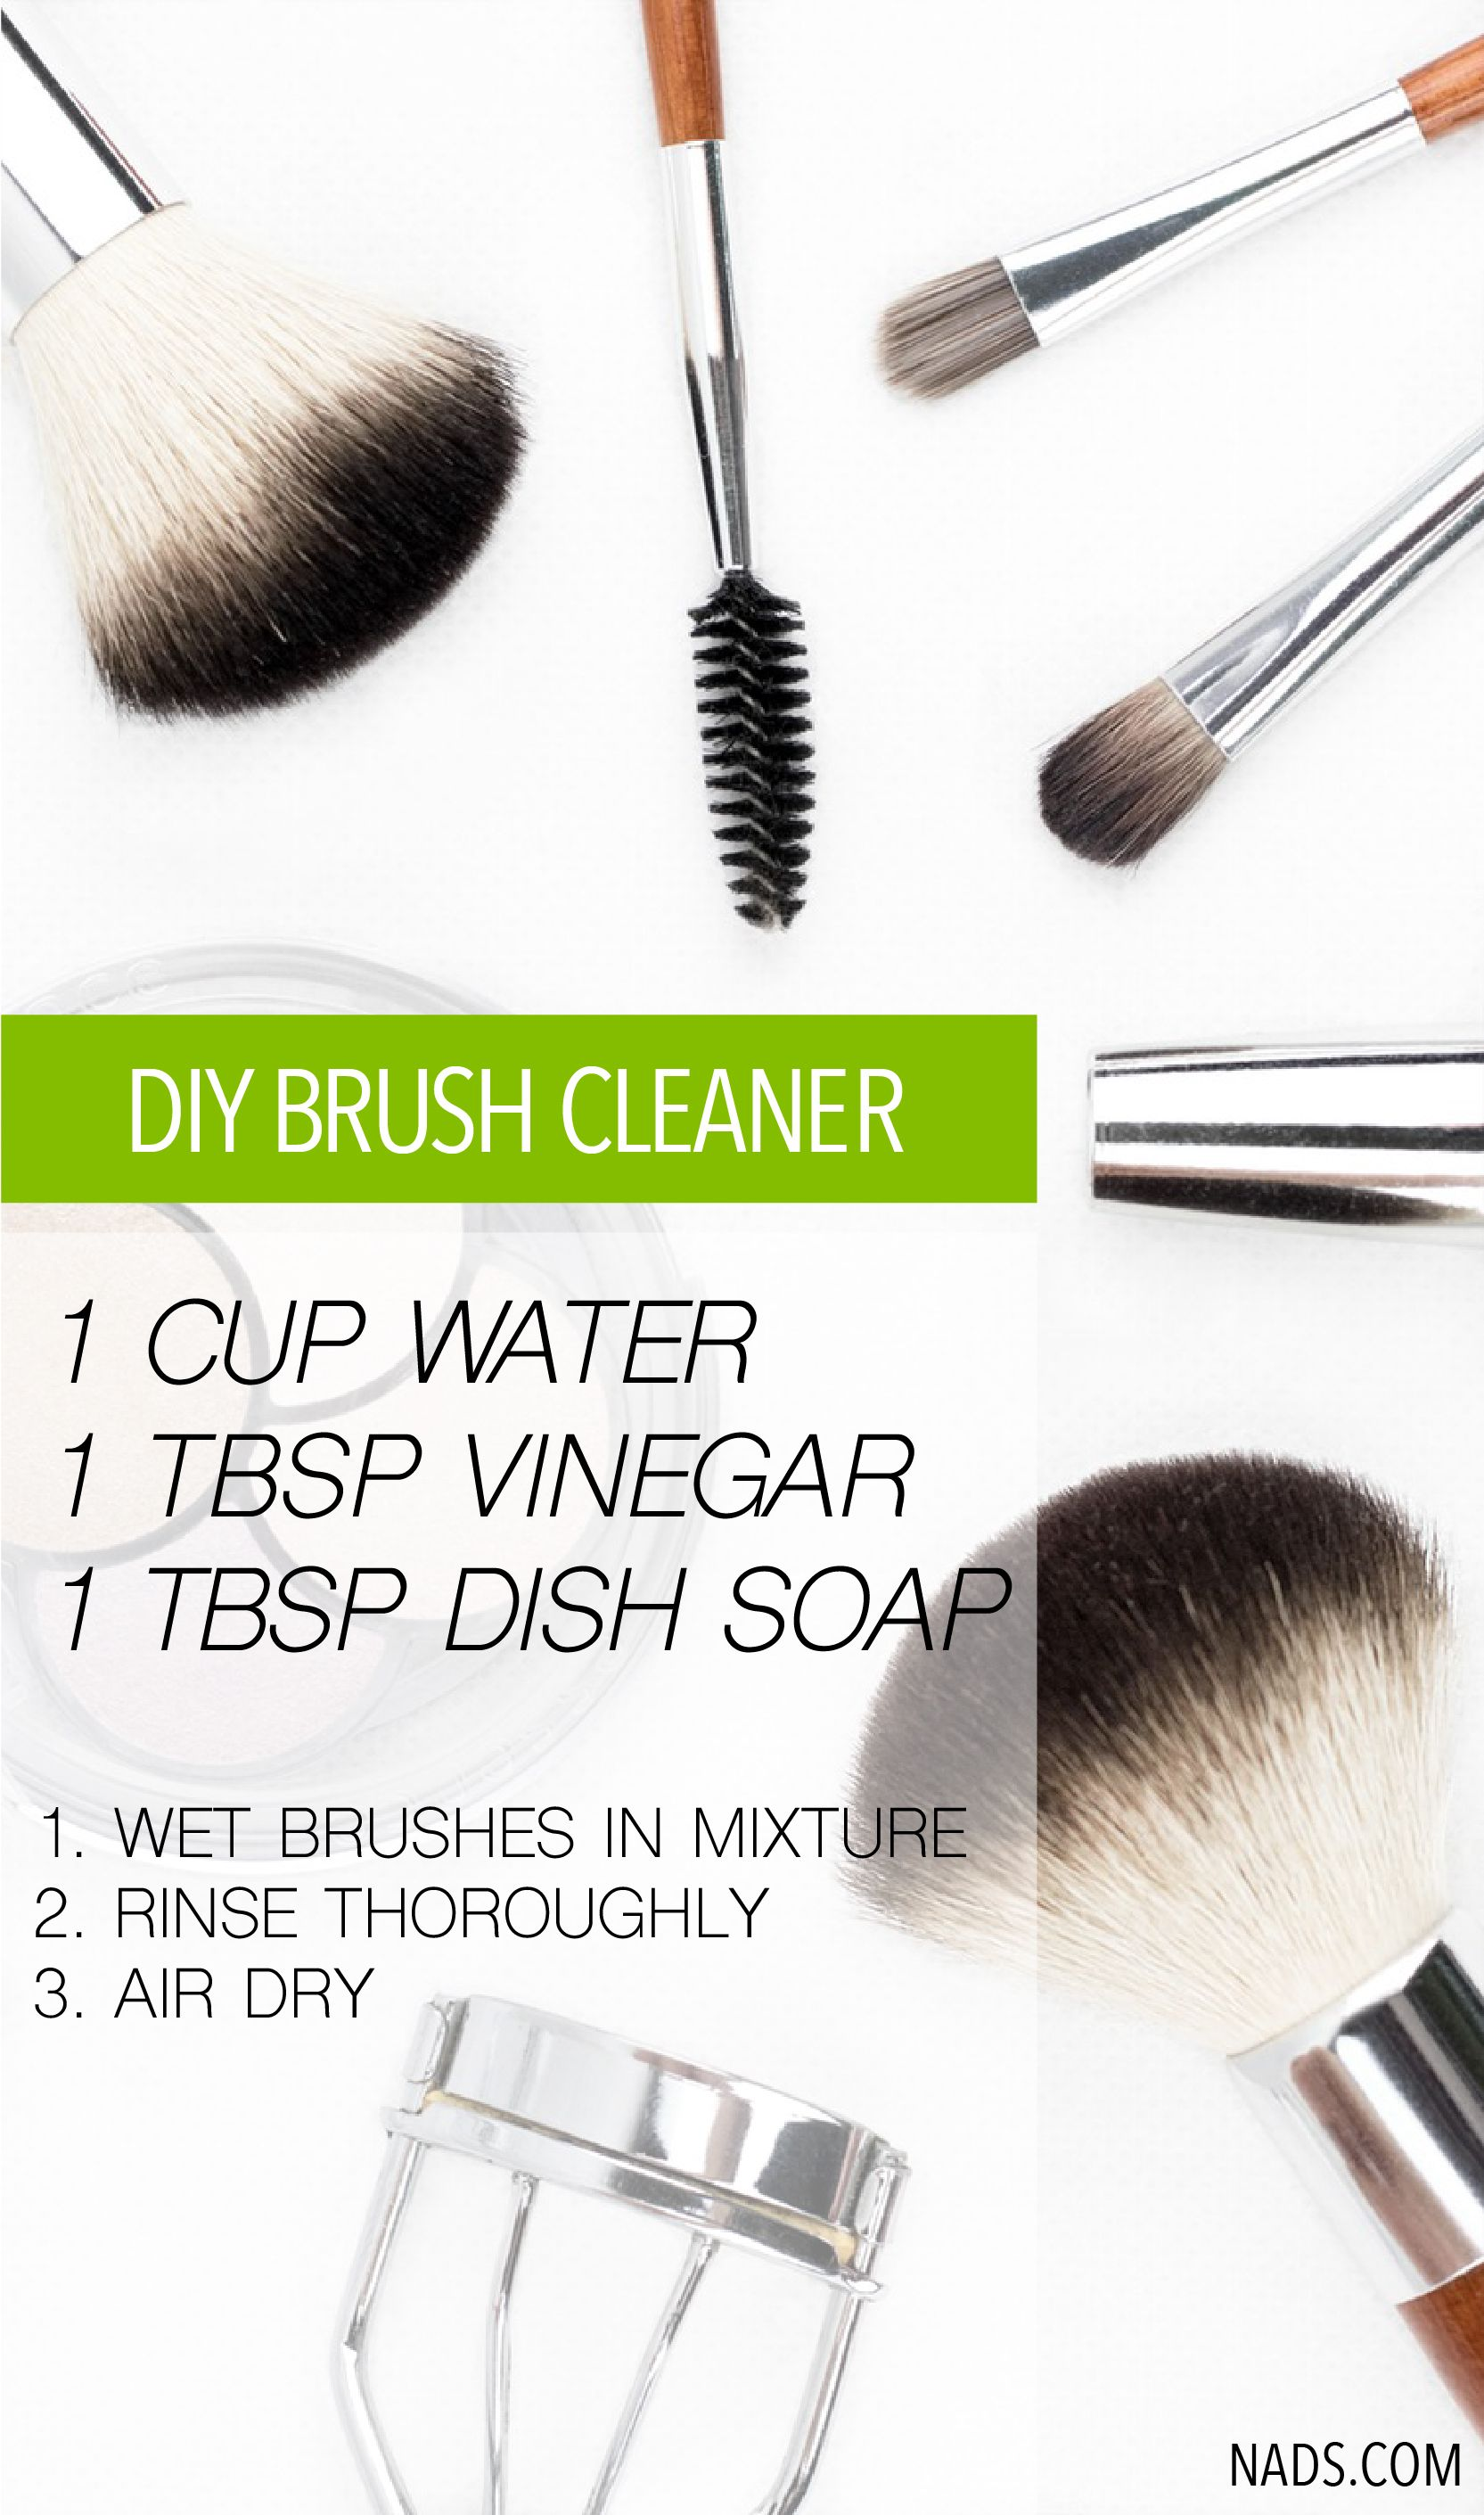 Clean make up brushes your skin will thank you for it! A